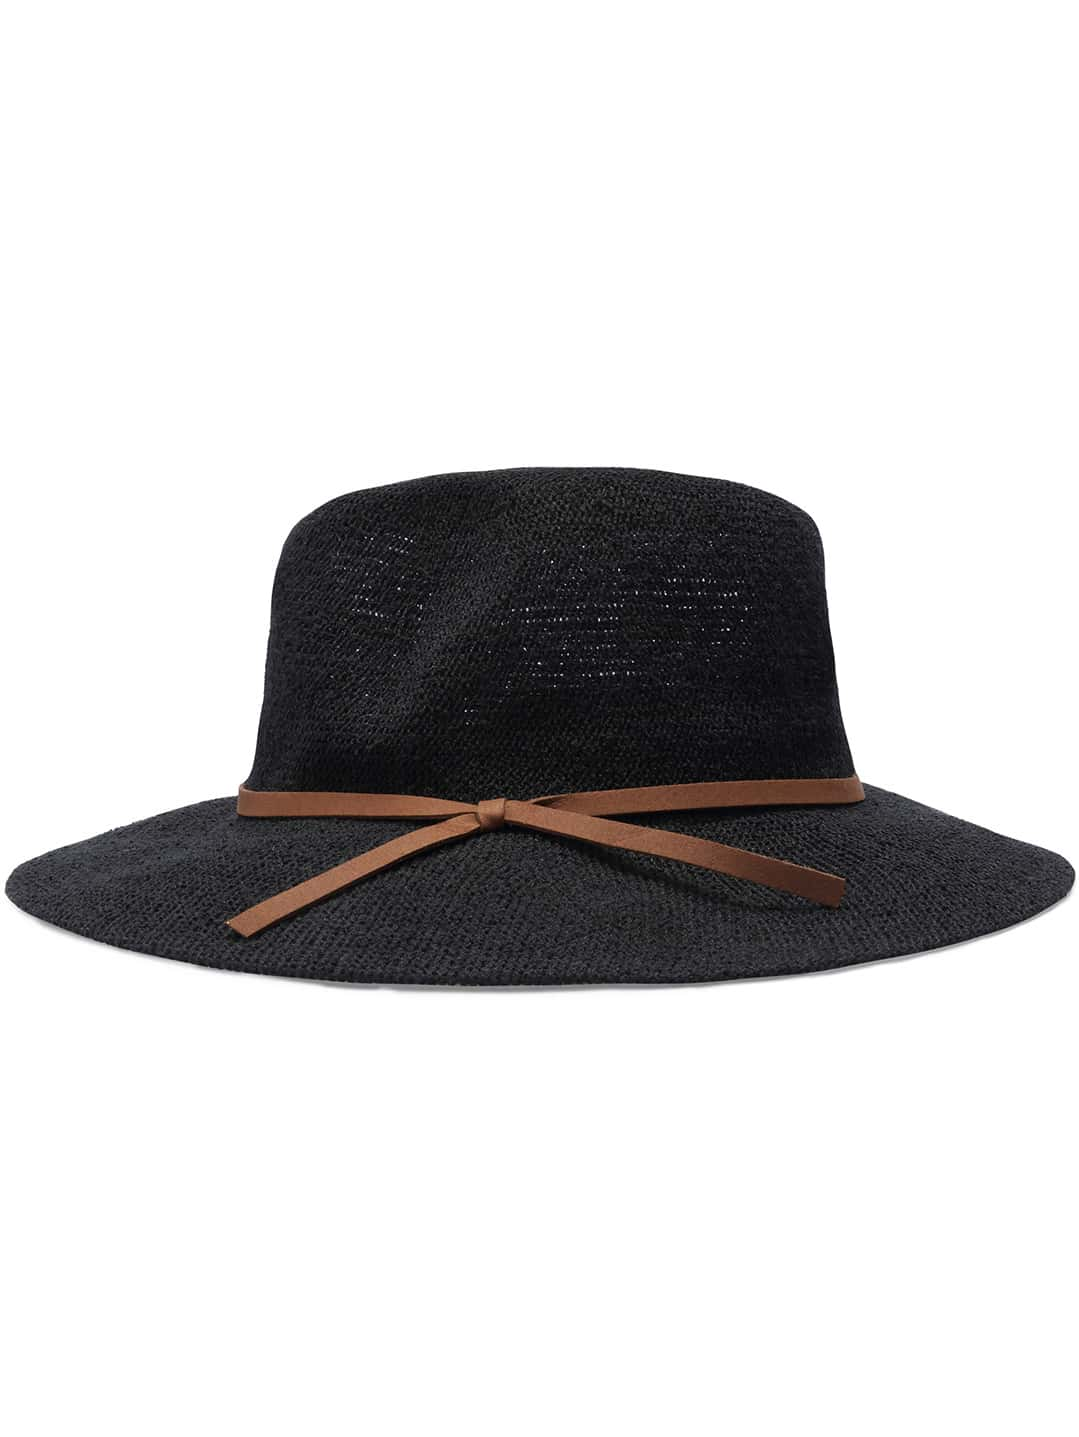 Black Casual Leather Belt Embellished Hat